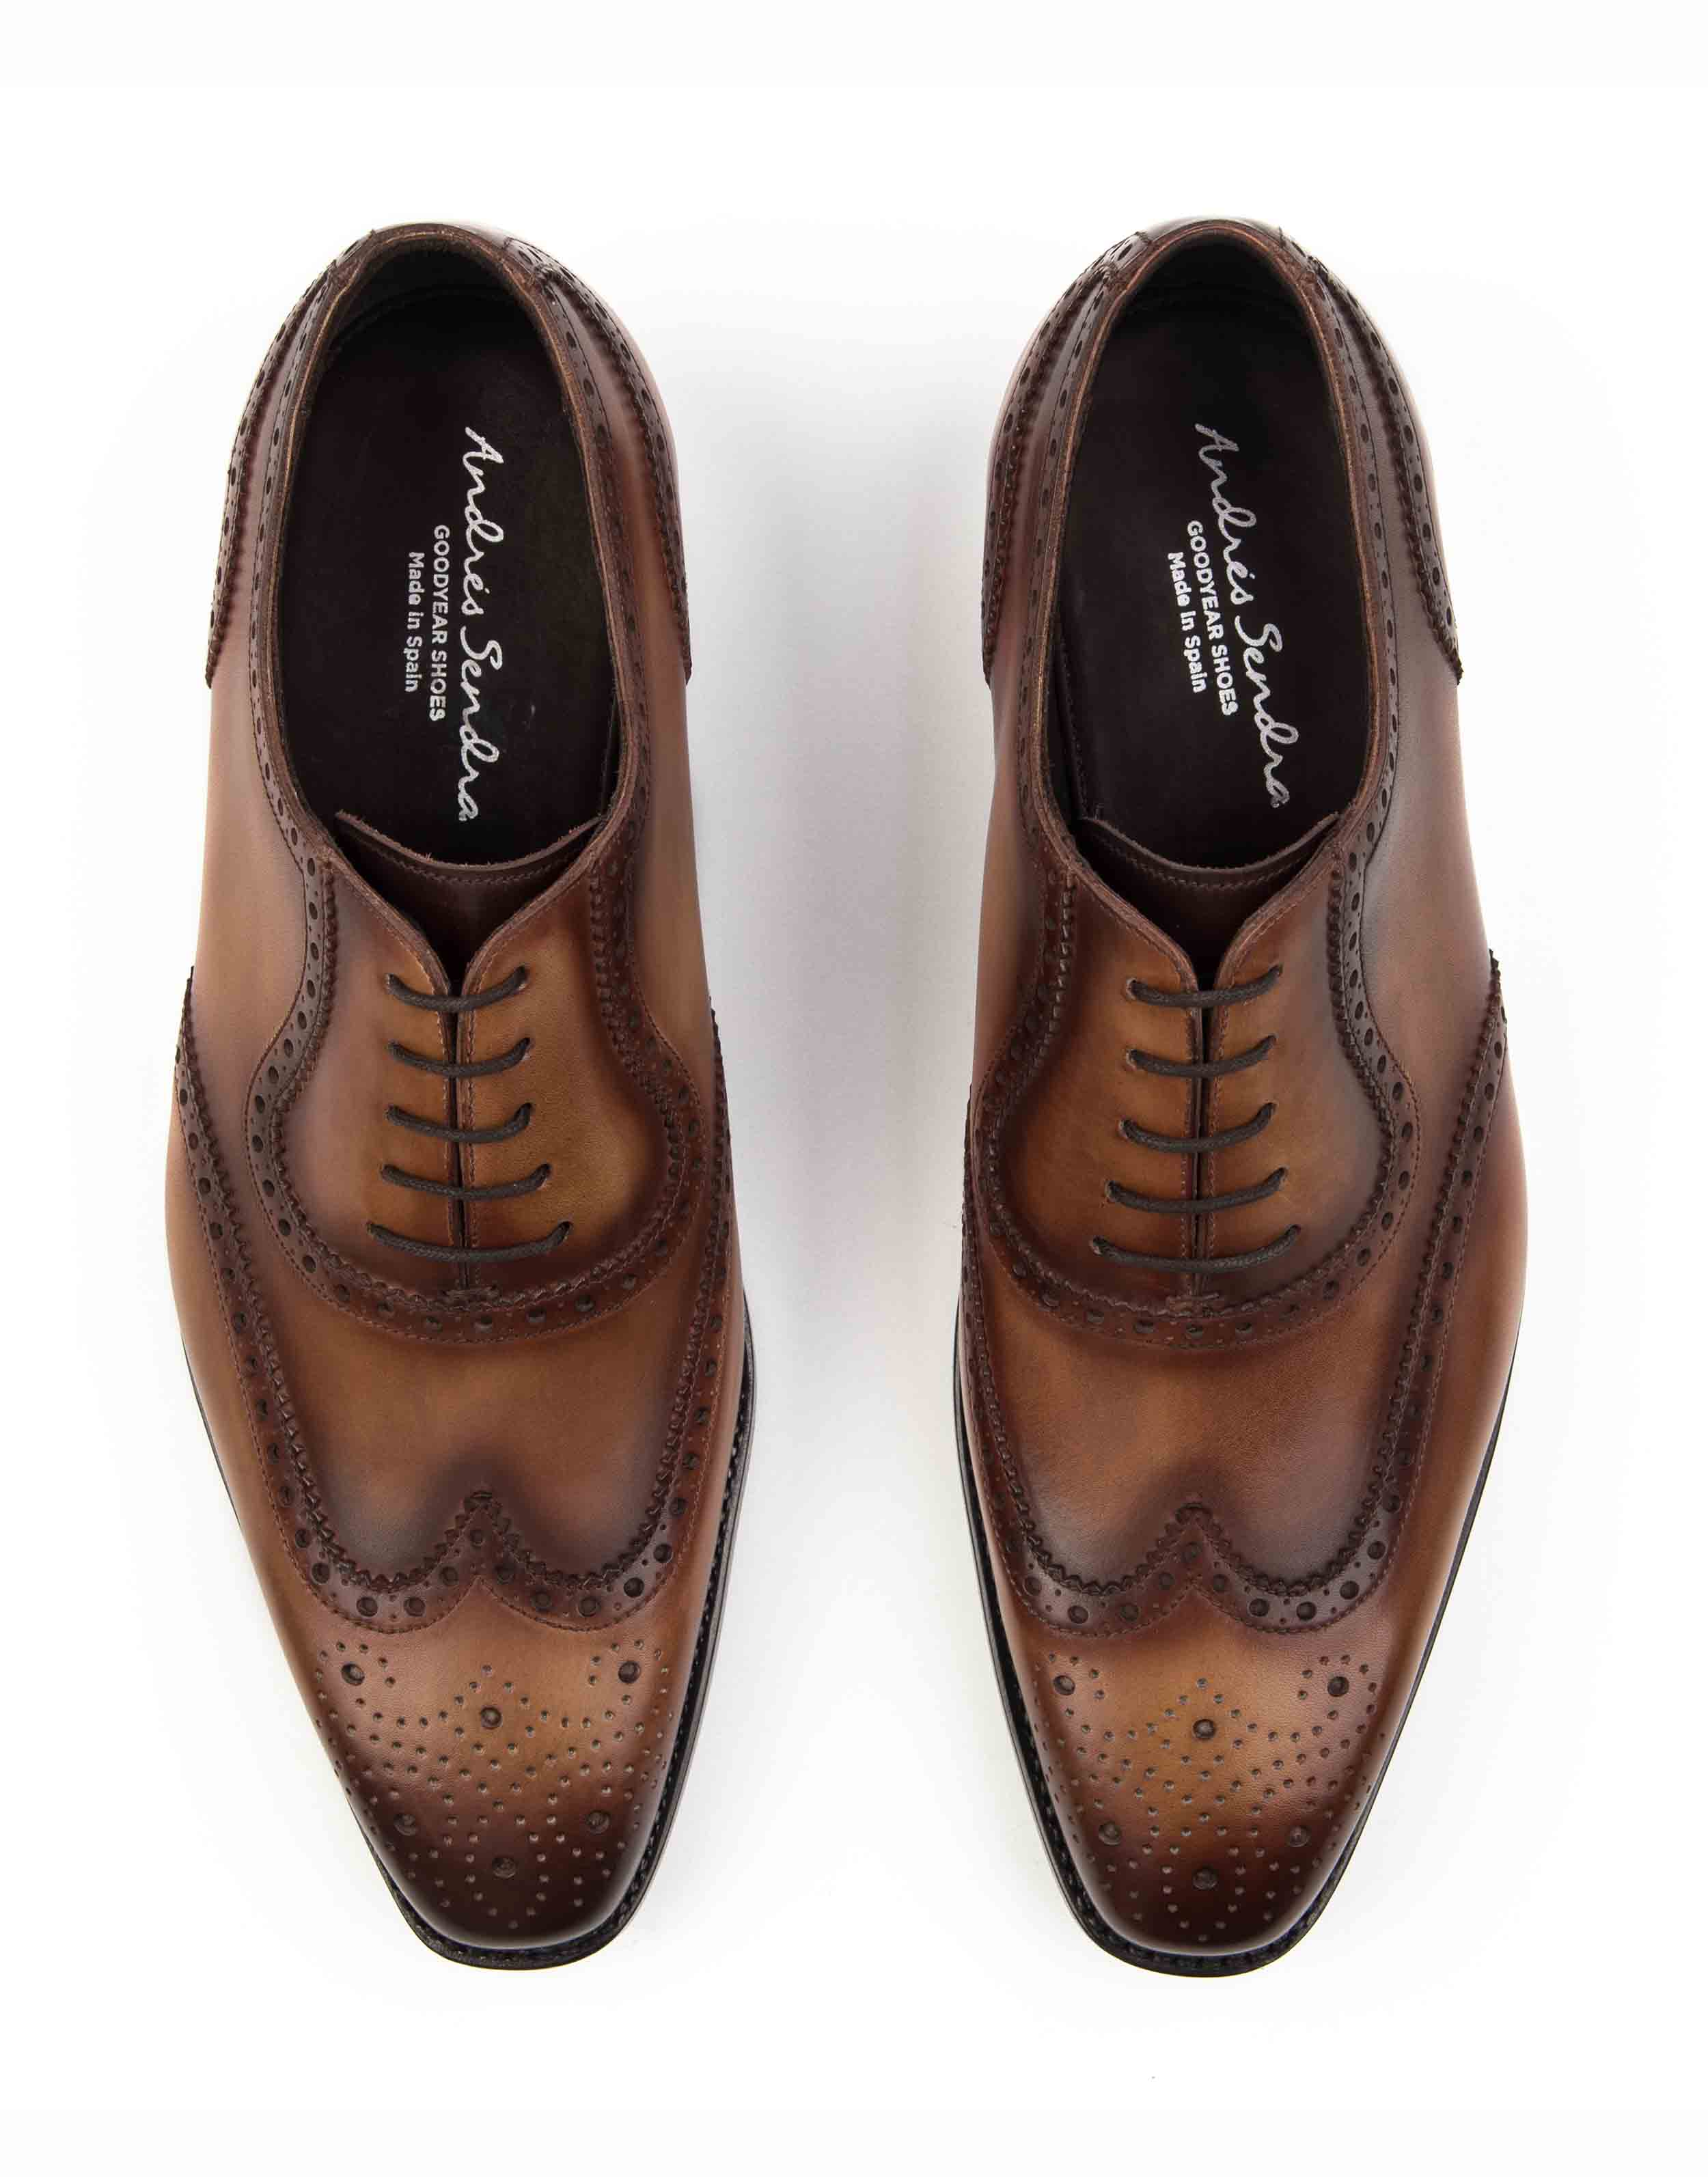 COGNAC BROGUE OXFORD SHOE4